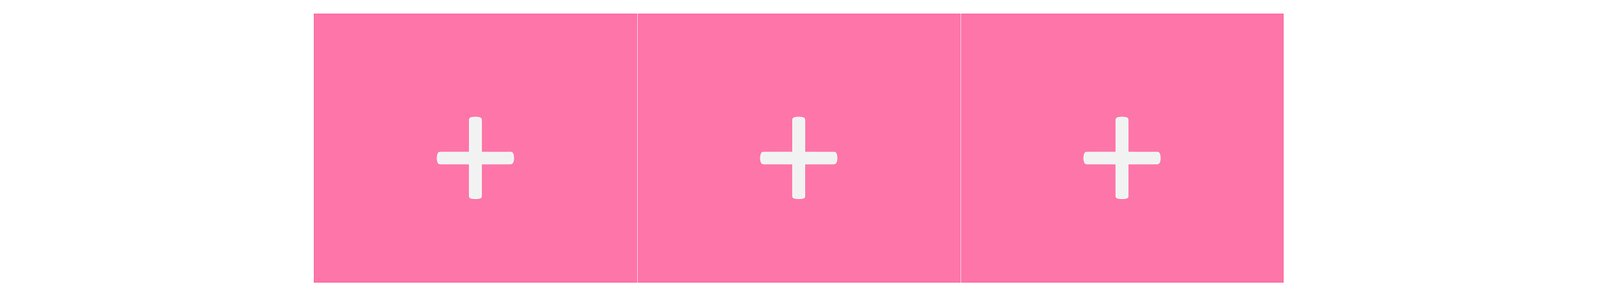 A pink block followed immediately by another pink block followed immediately by another pink block.